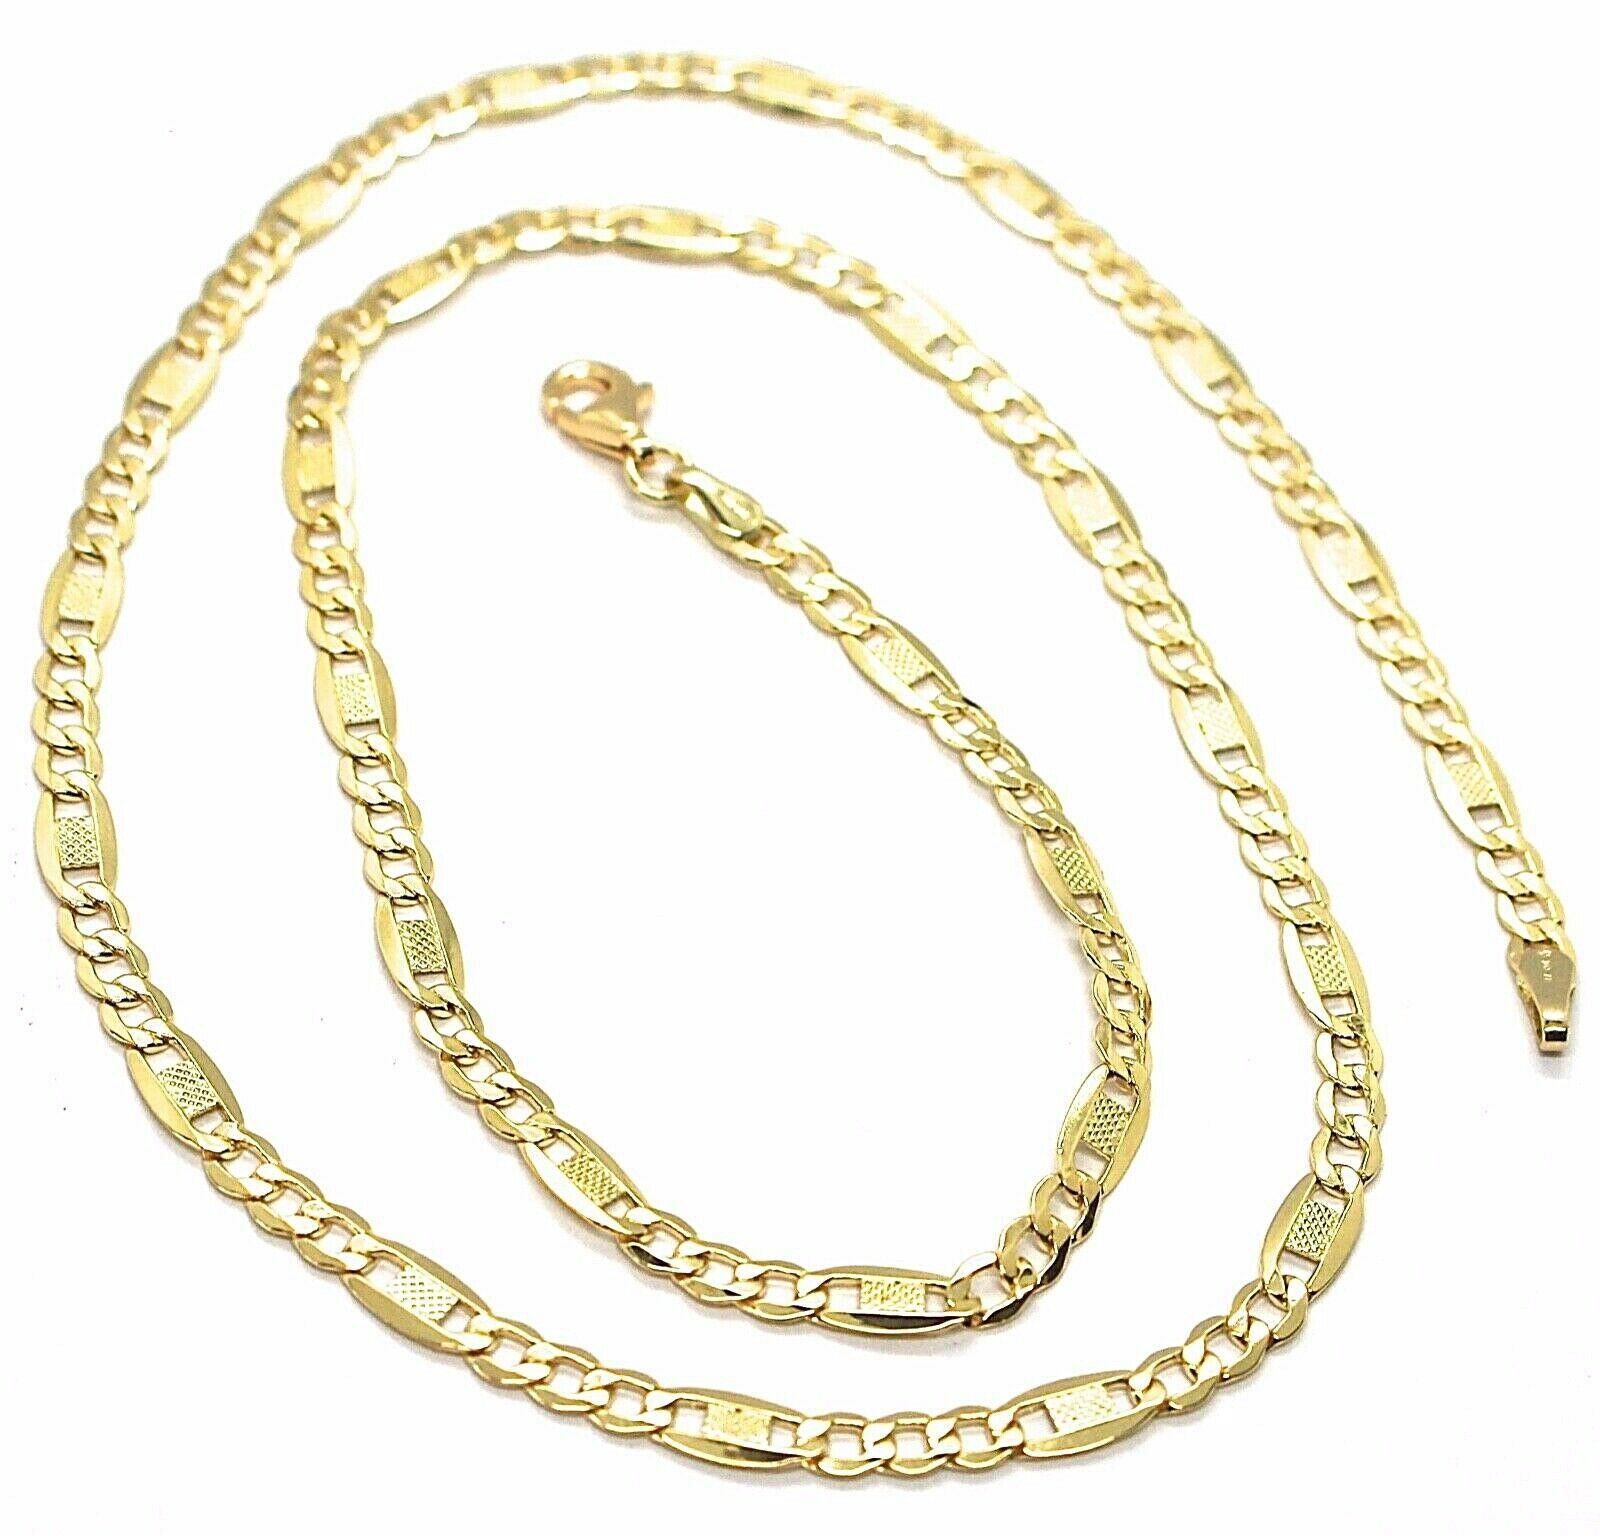 Chain Yellow Gold 18K 750, 50 cm, Curb Flat and Plates Bluebeat, 4 MM